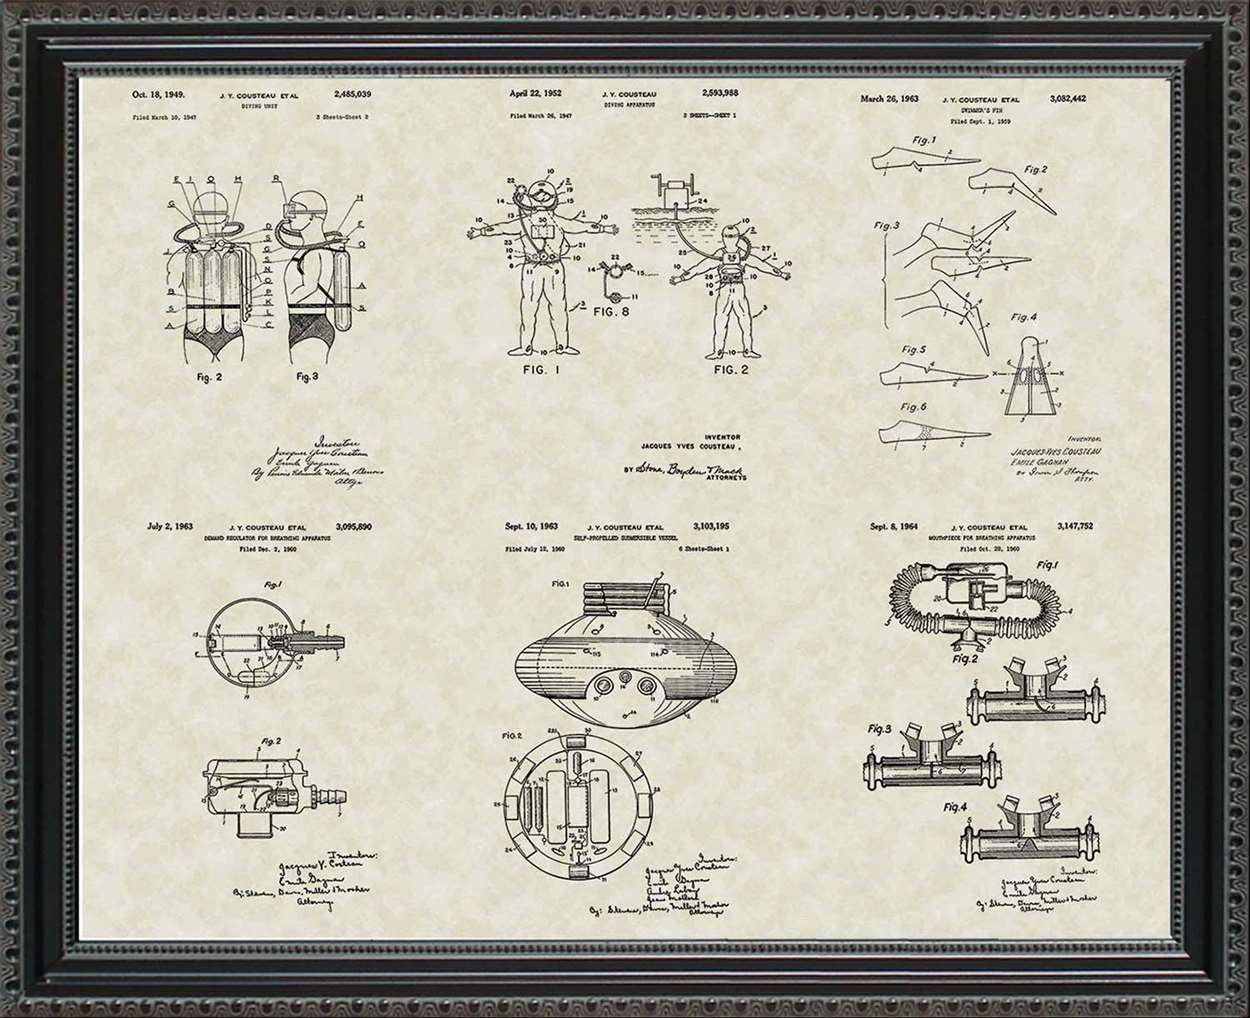 Jacques Cousteau Patents, 20x24